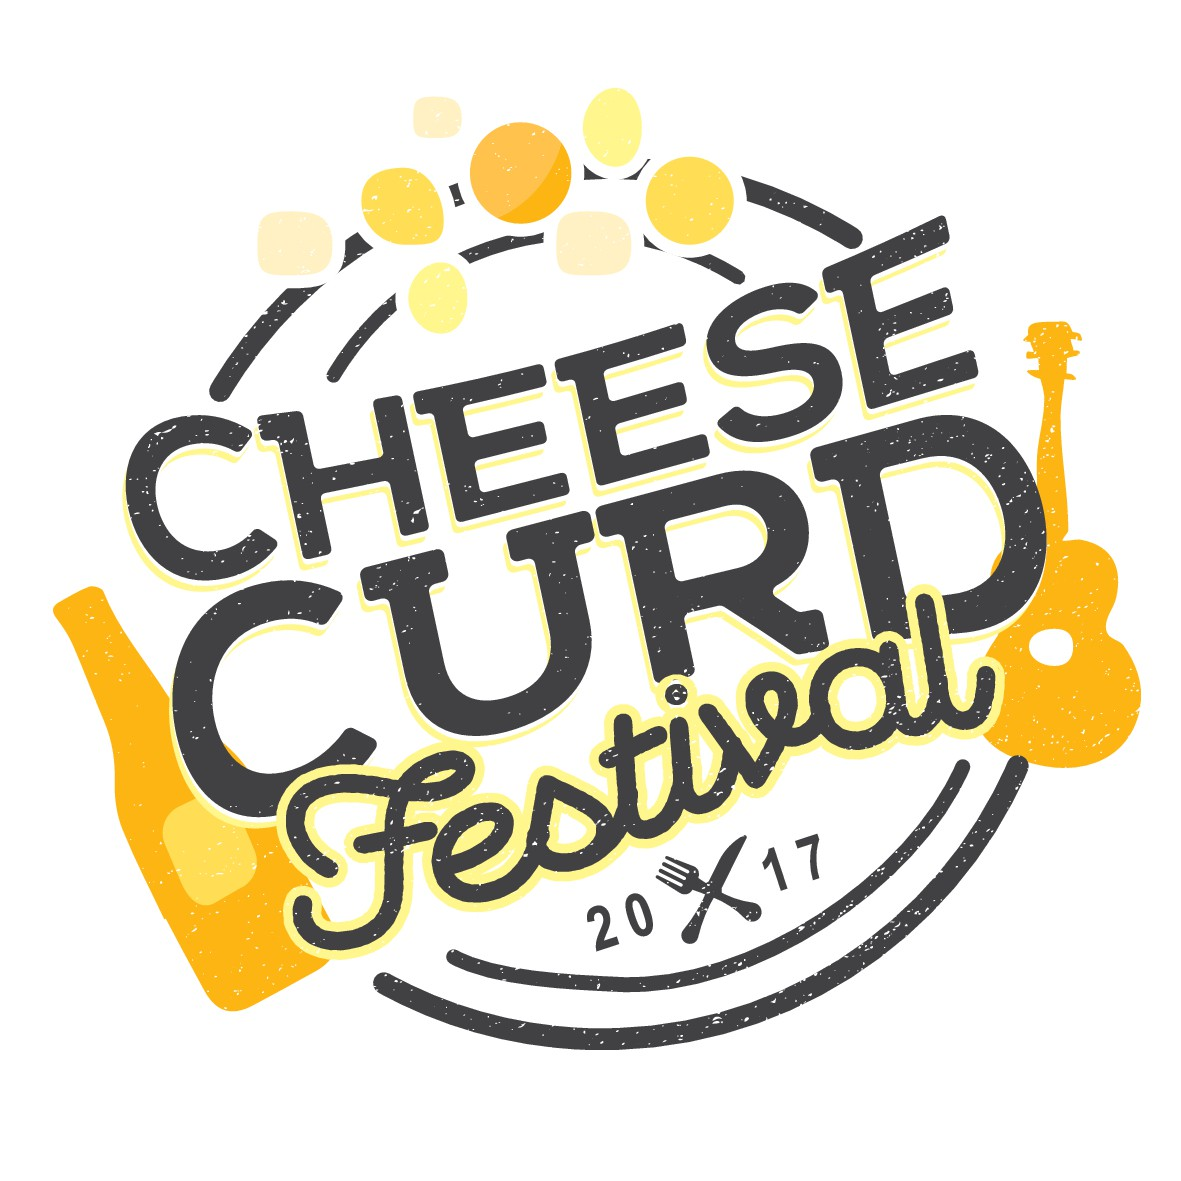 Cheese Curd Festival needs new logo!